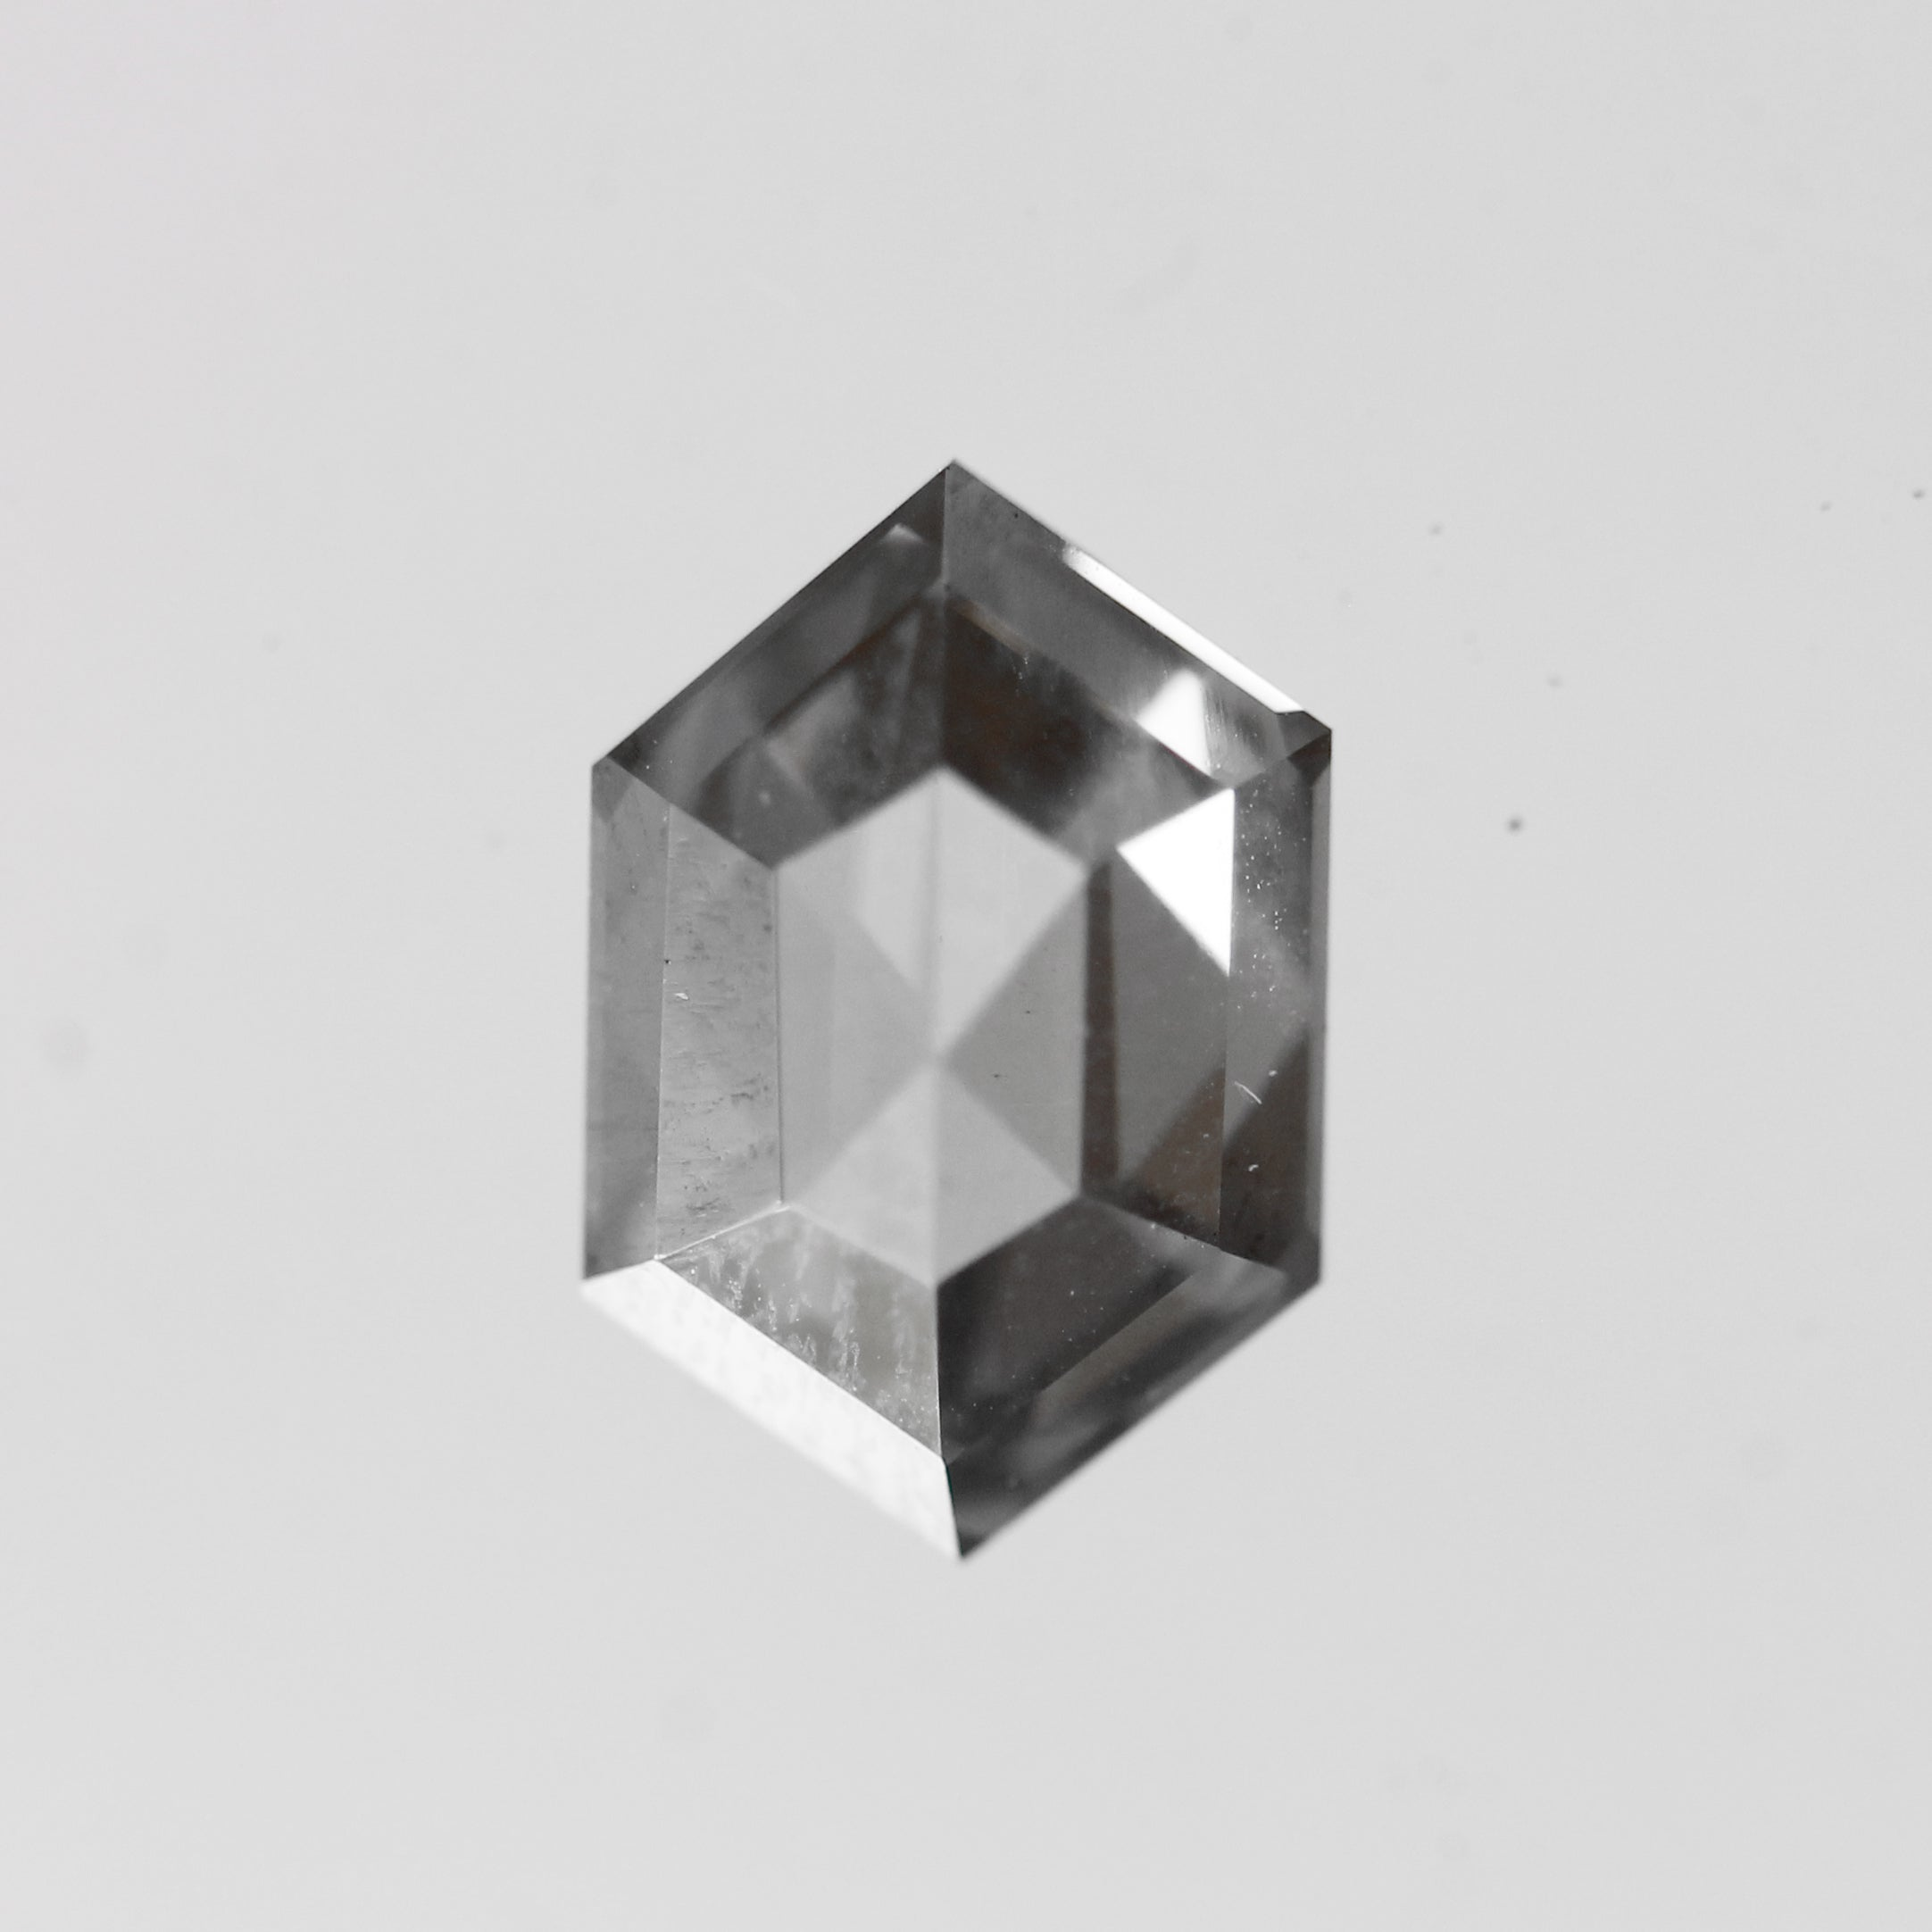 2.08 Carat Hexagon Moissanite - Inventory Code HXMOI208 - Midwinter Co. Alternative Bridal Rings and Modern Fine Jewelry